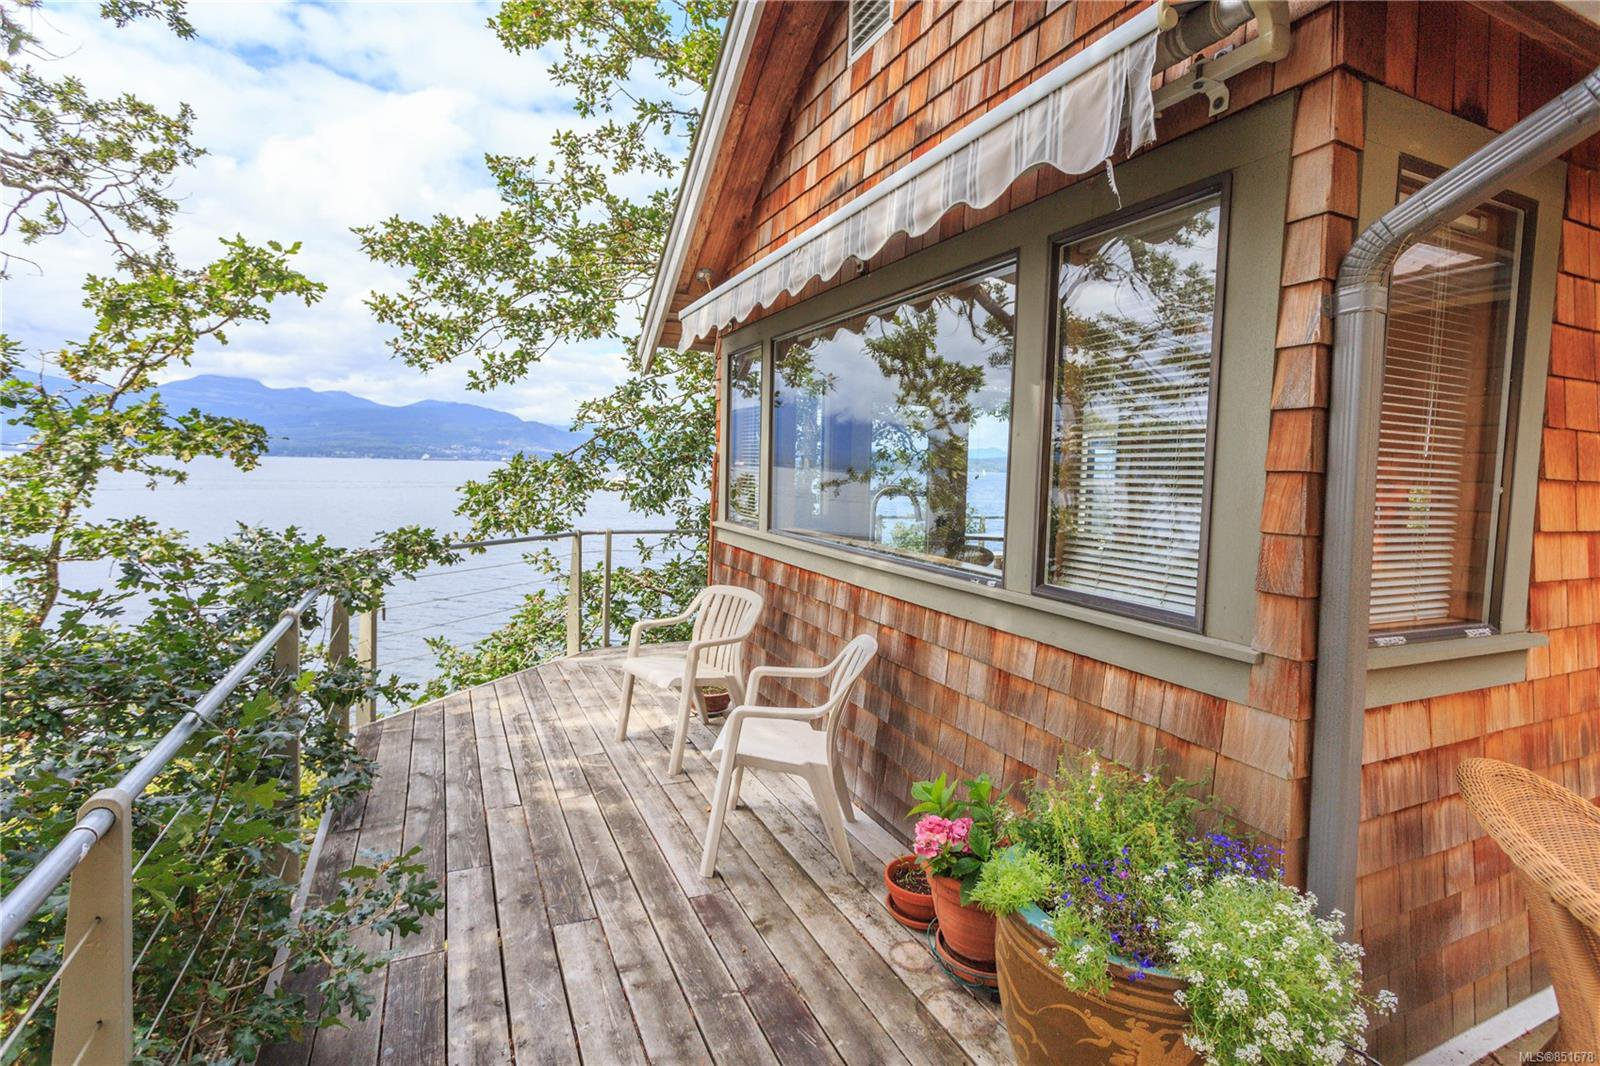 Photo 22: Photos: 262 Forbes Dr in : Isl Thetis Island House for sale (Islands)  : MLS®# 851678